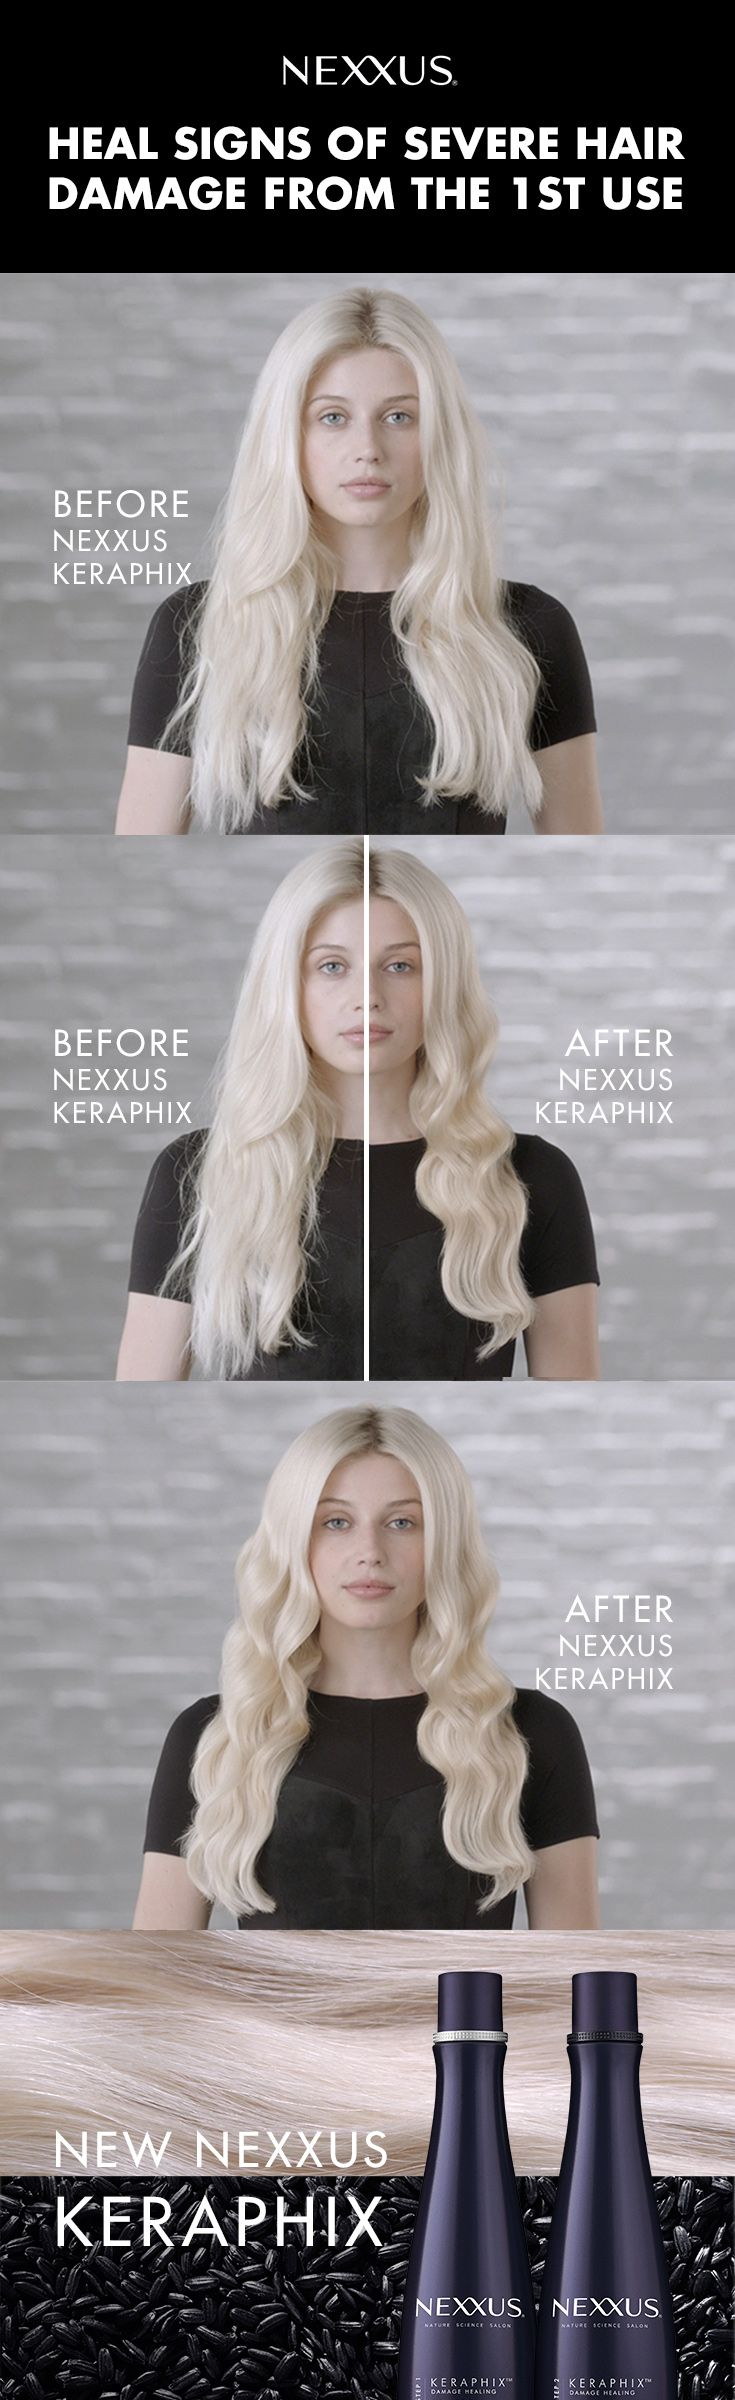 Patience is overrated. Get stronger, smoother hair from day one of using Nexxus Keraphix.